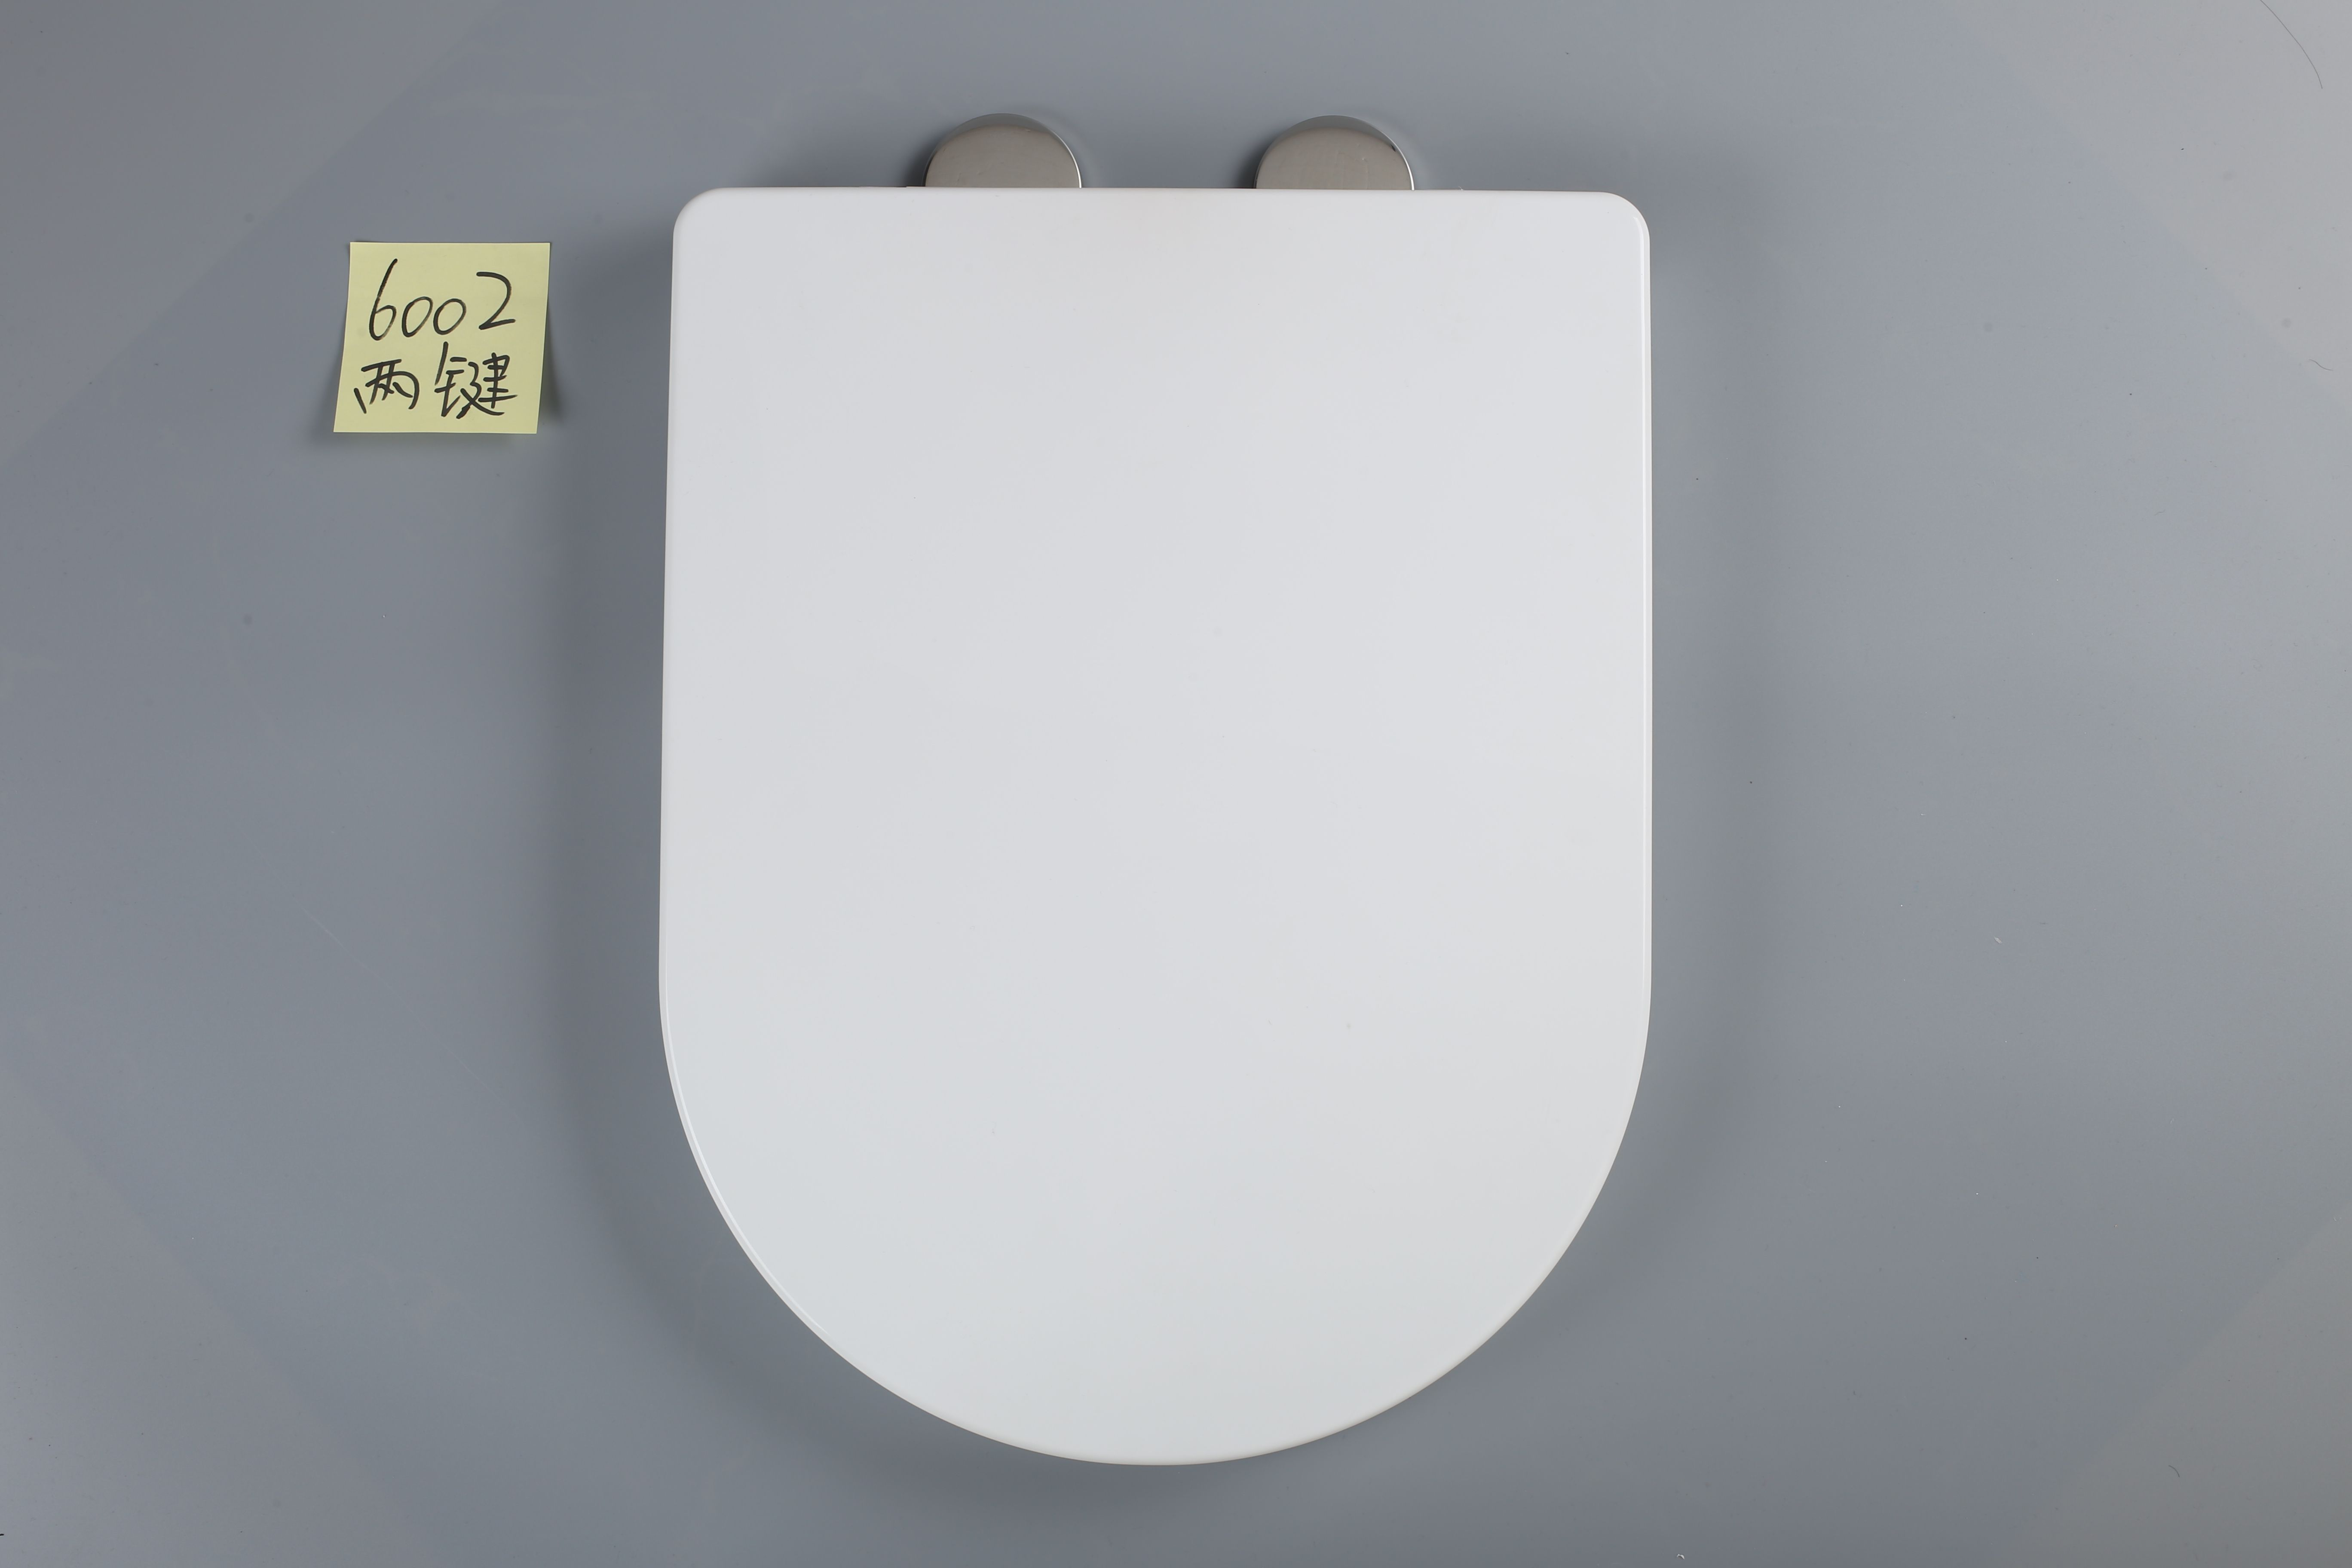 Toilet Seat High Quality Surface Stable Hinges Easy To Mount In 2020 Toilet Seat Cover Toilet Seat Toilet Seat Lid Covers